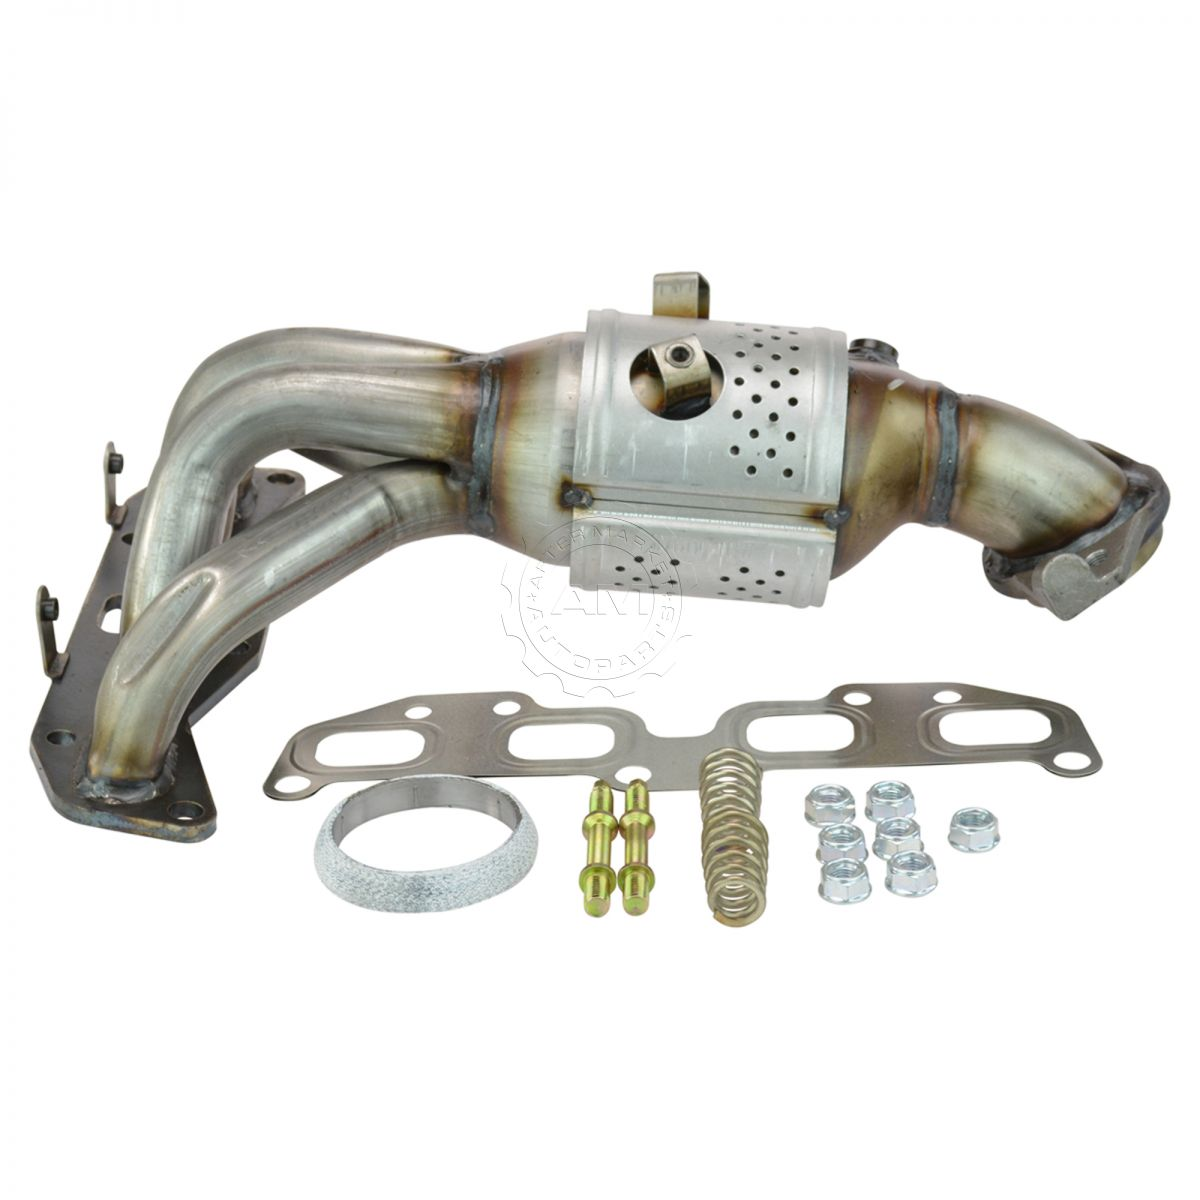 Manifold With Catalytic Converter ****BRAND NEW****